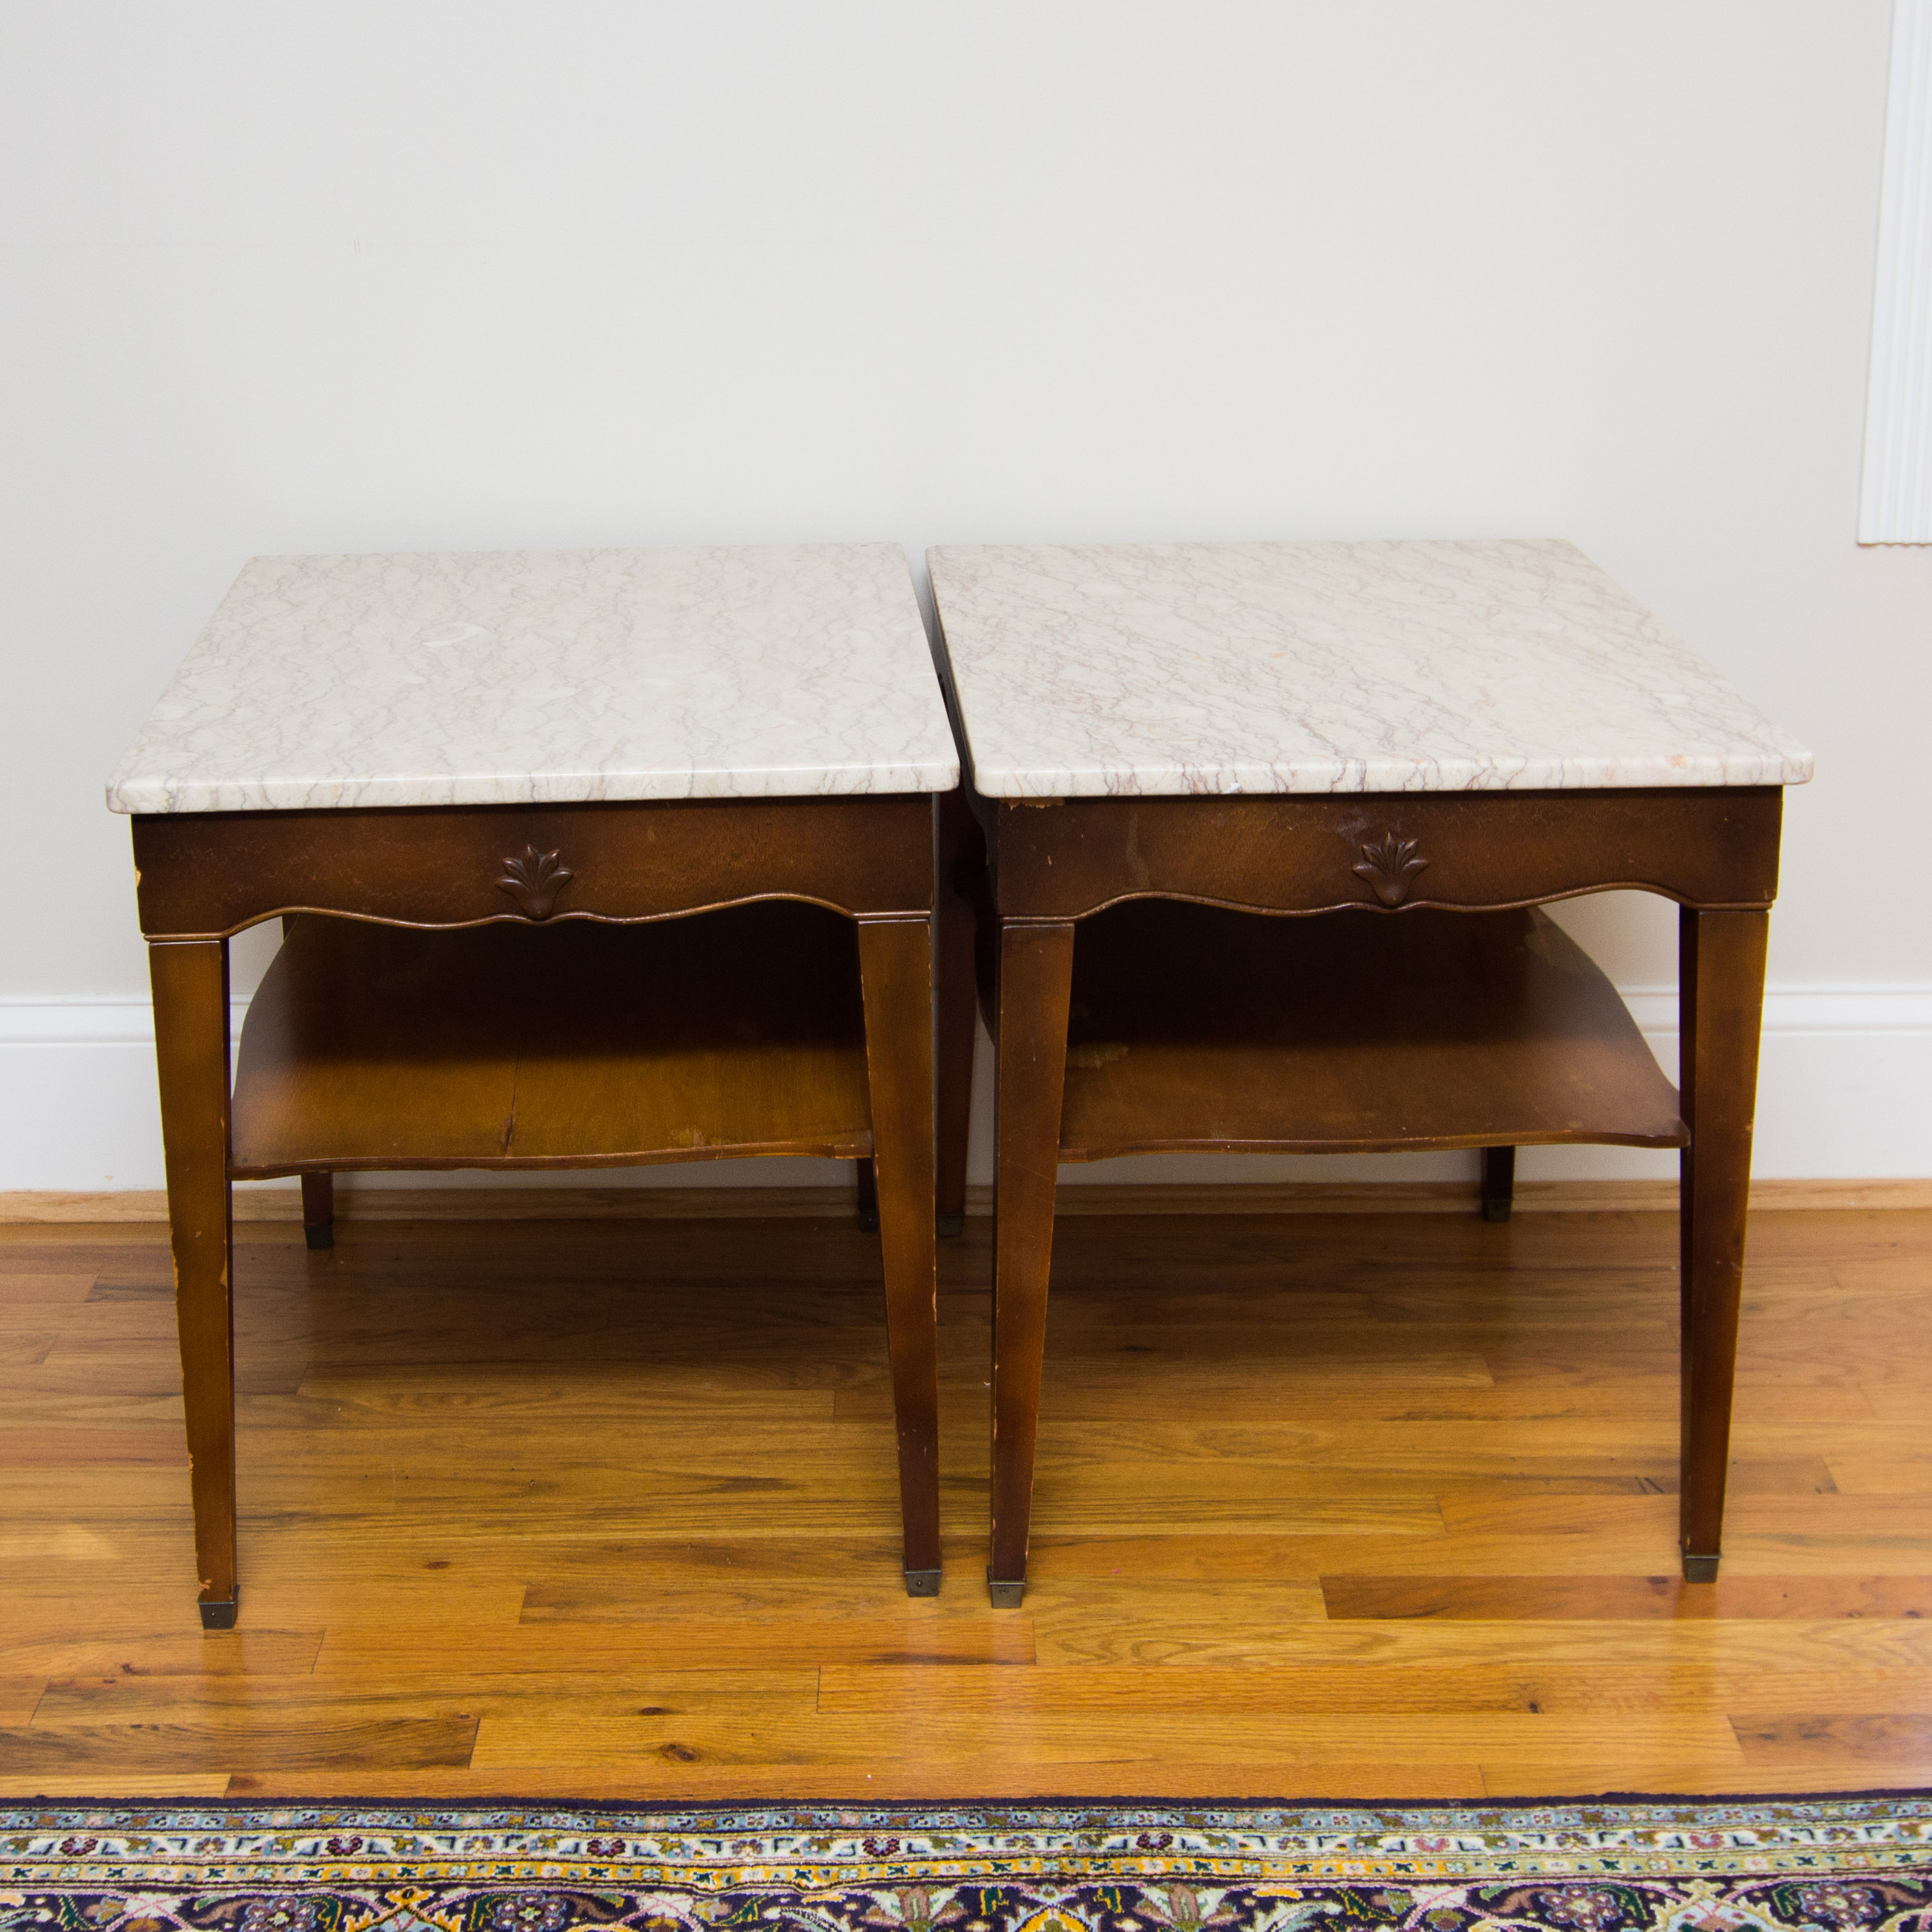 marble top end tables. Marble Top End Tables From Portugal